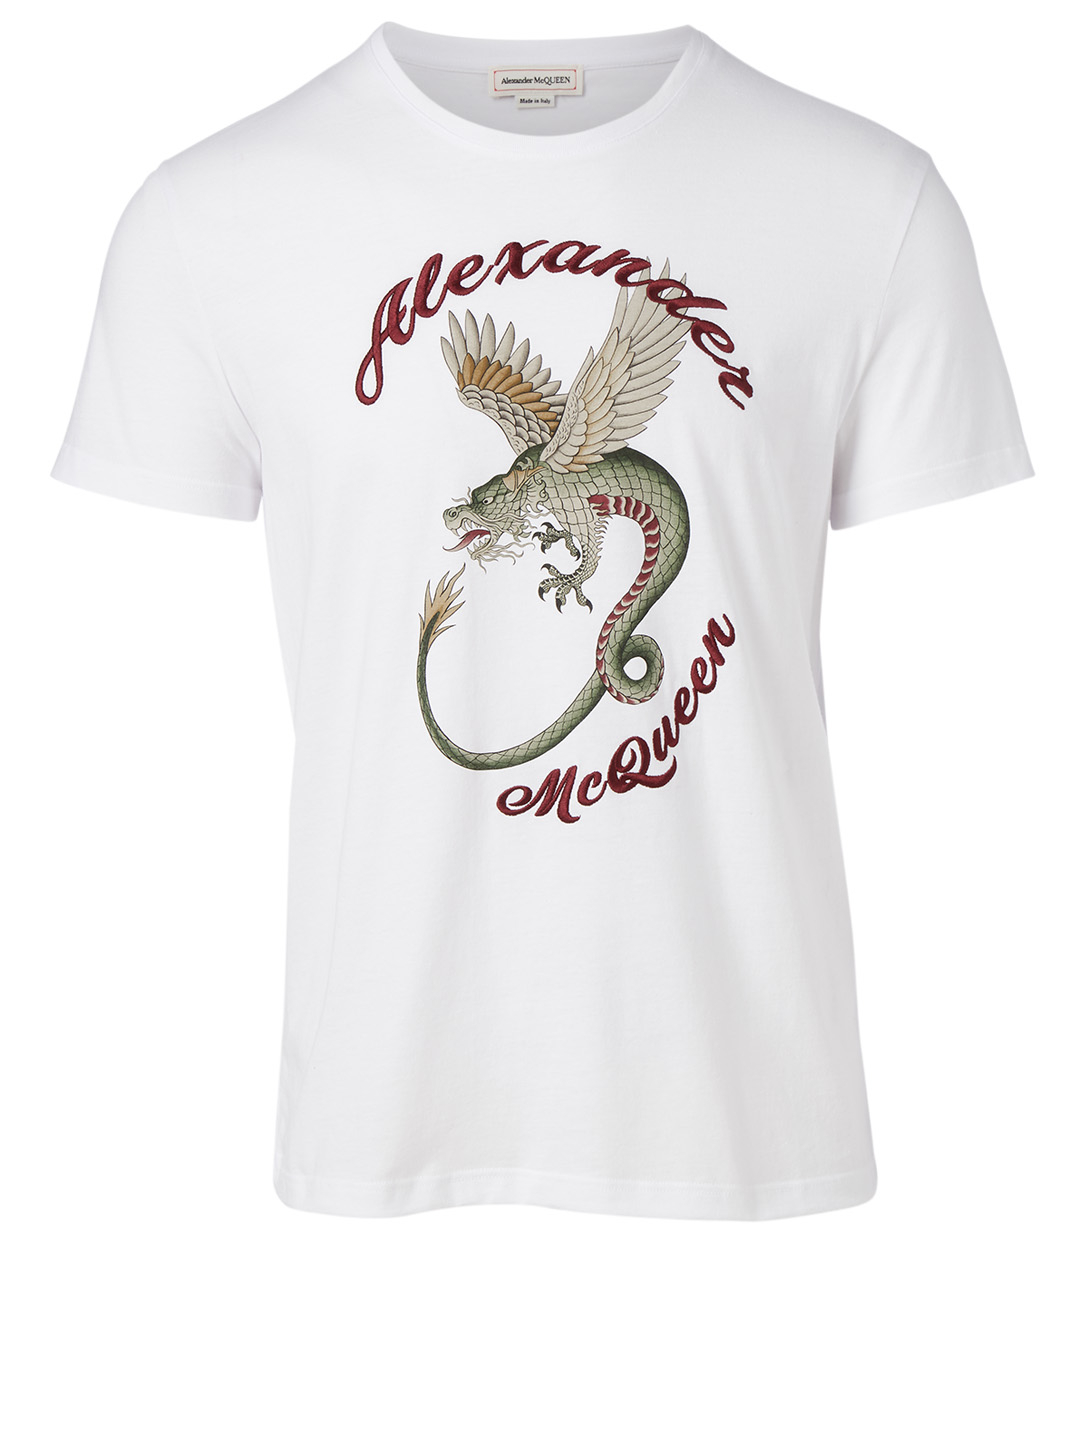 ALEXANDER MCQUEEN Cotton Graphic T-Shirt Men's White